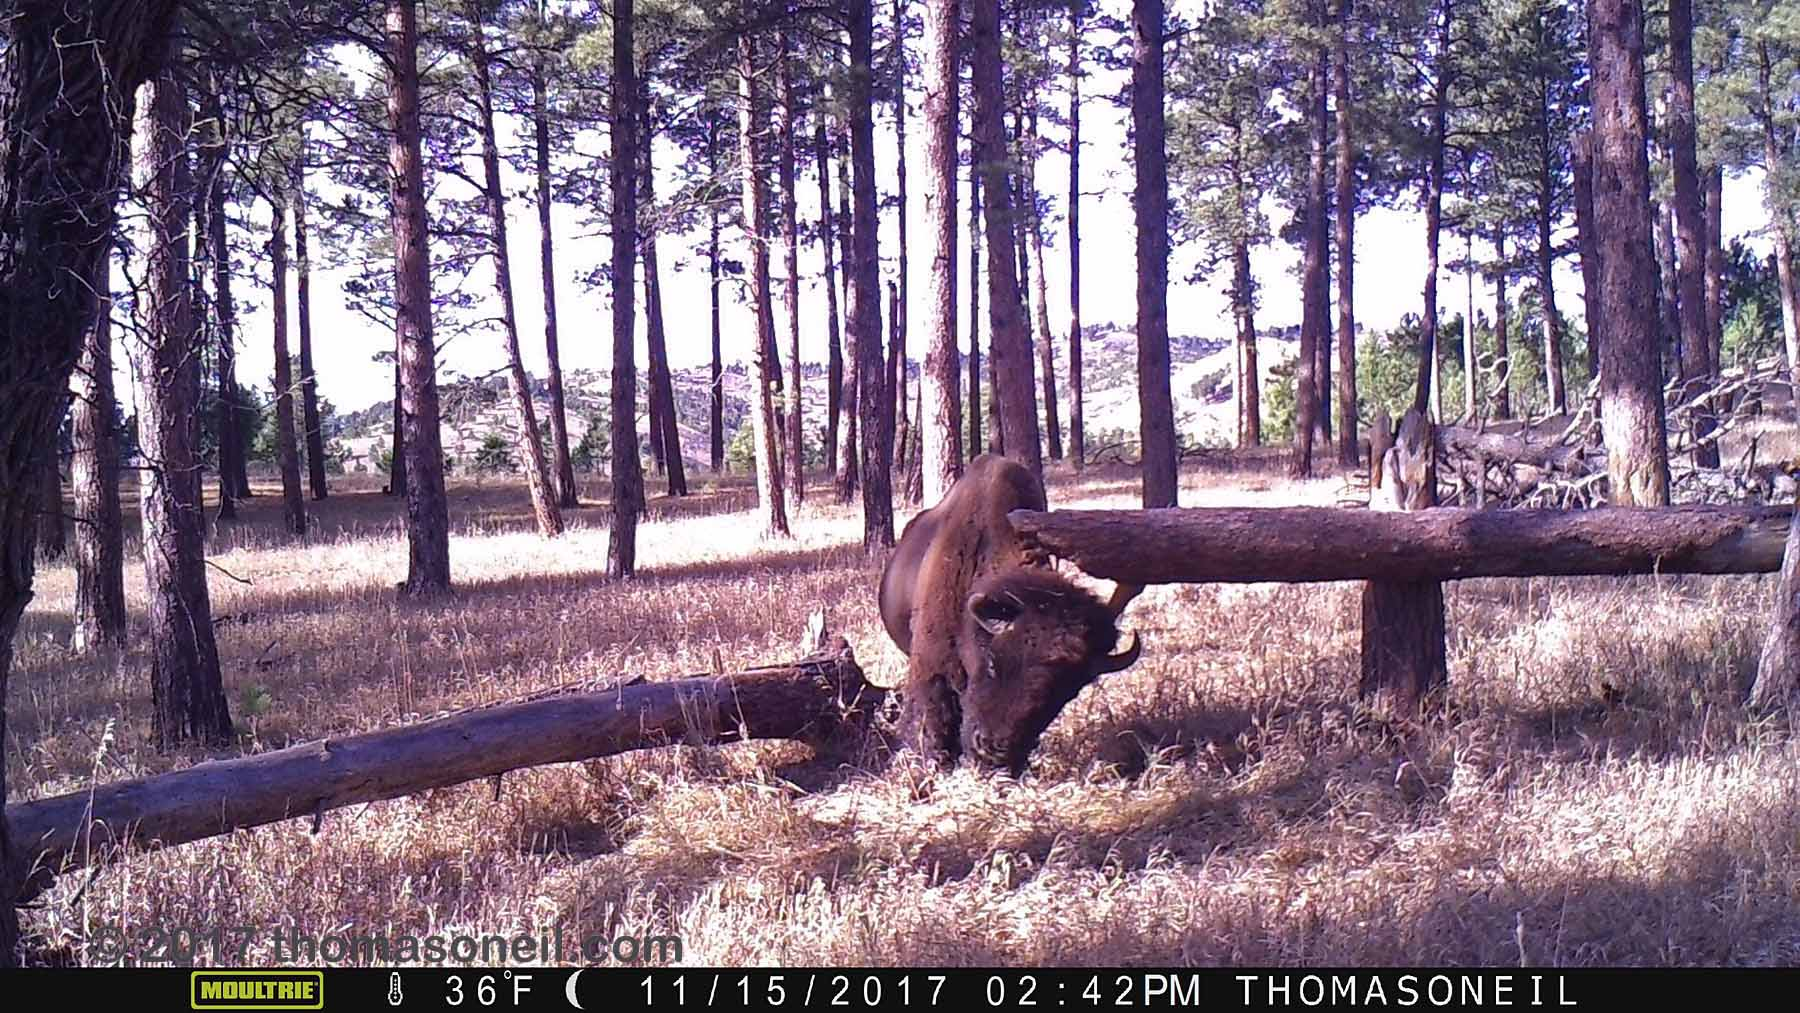 Custer State Park bison on trailcam, November 2017.  This is the last usable image I got before a wildfire swept through this area three weeks later and destroyed the camera.